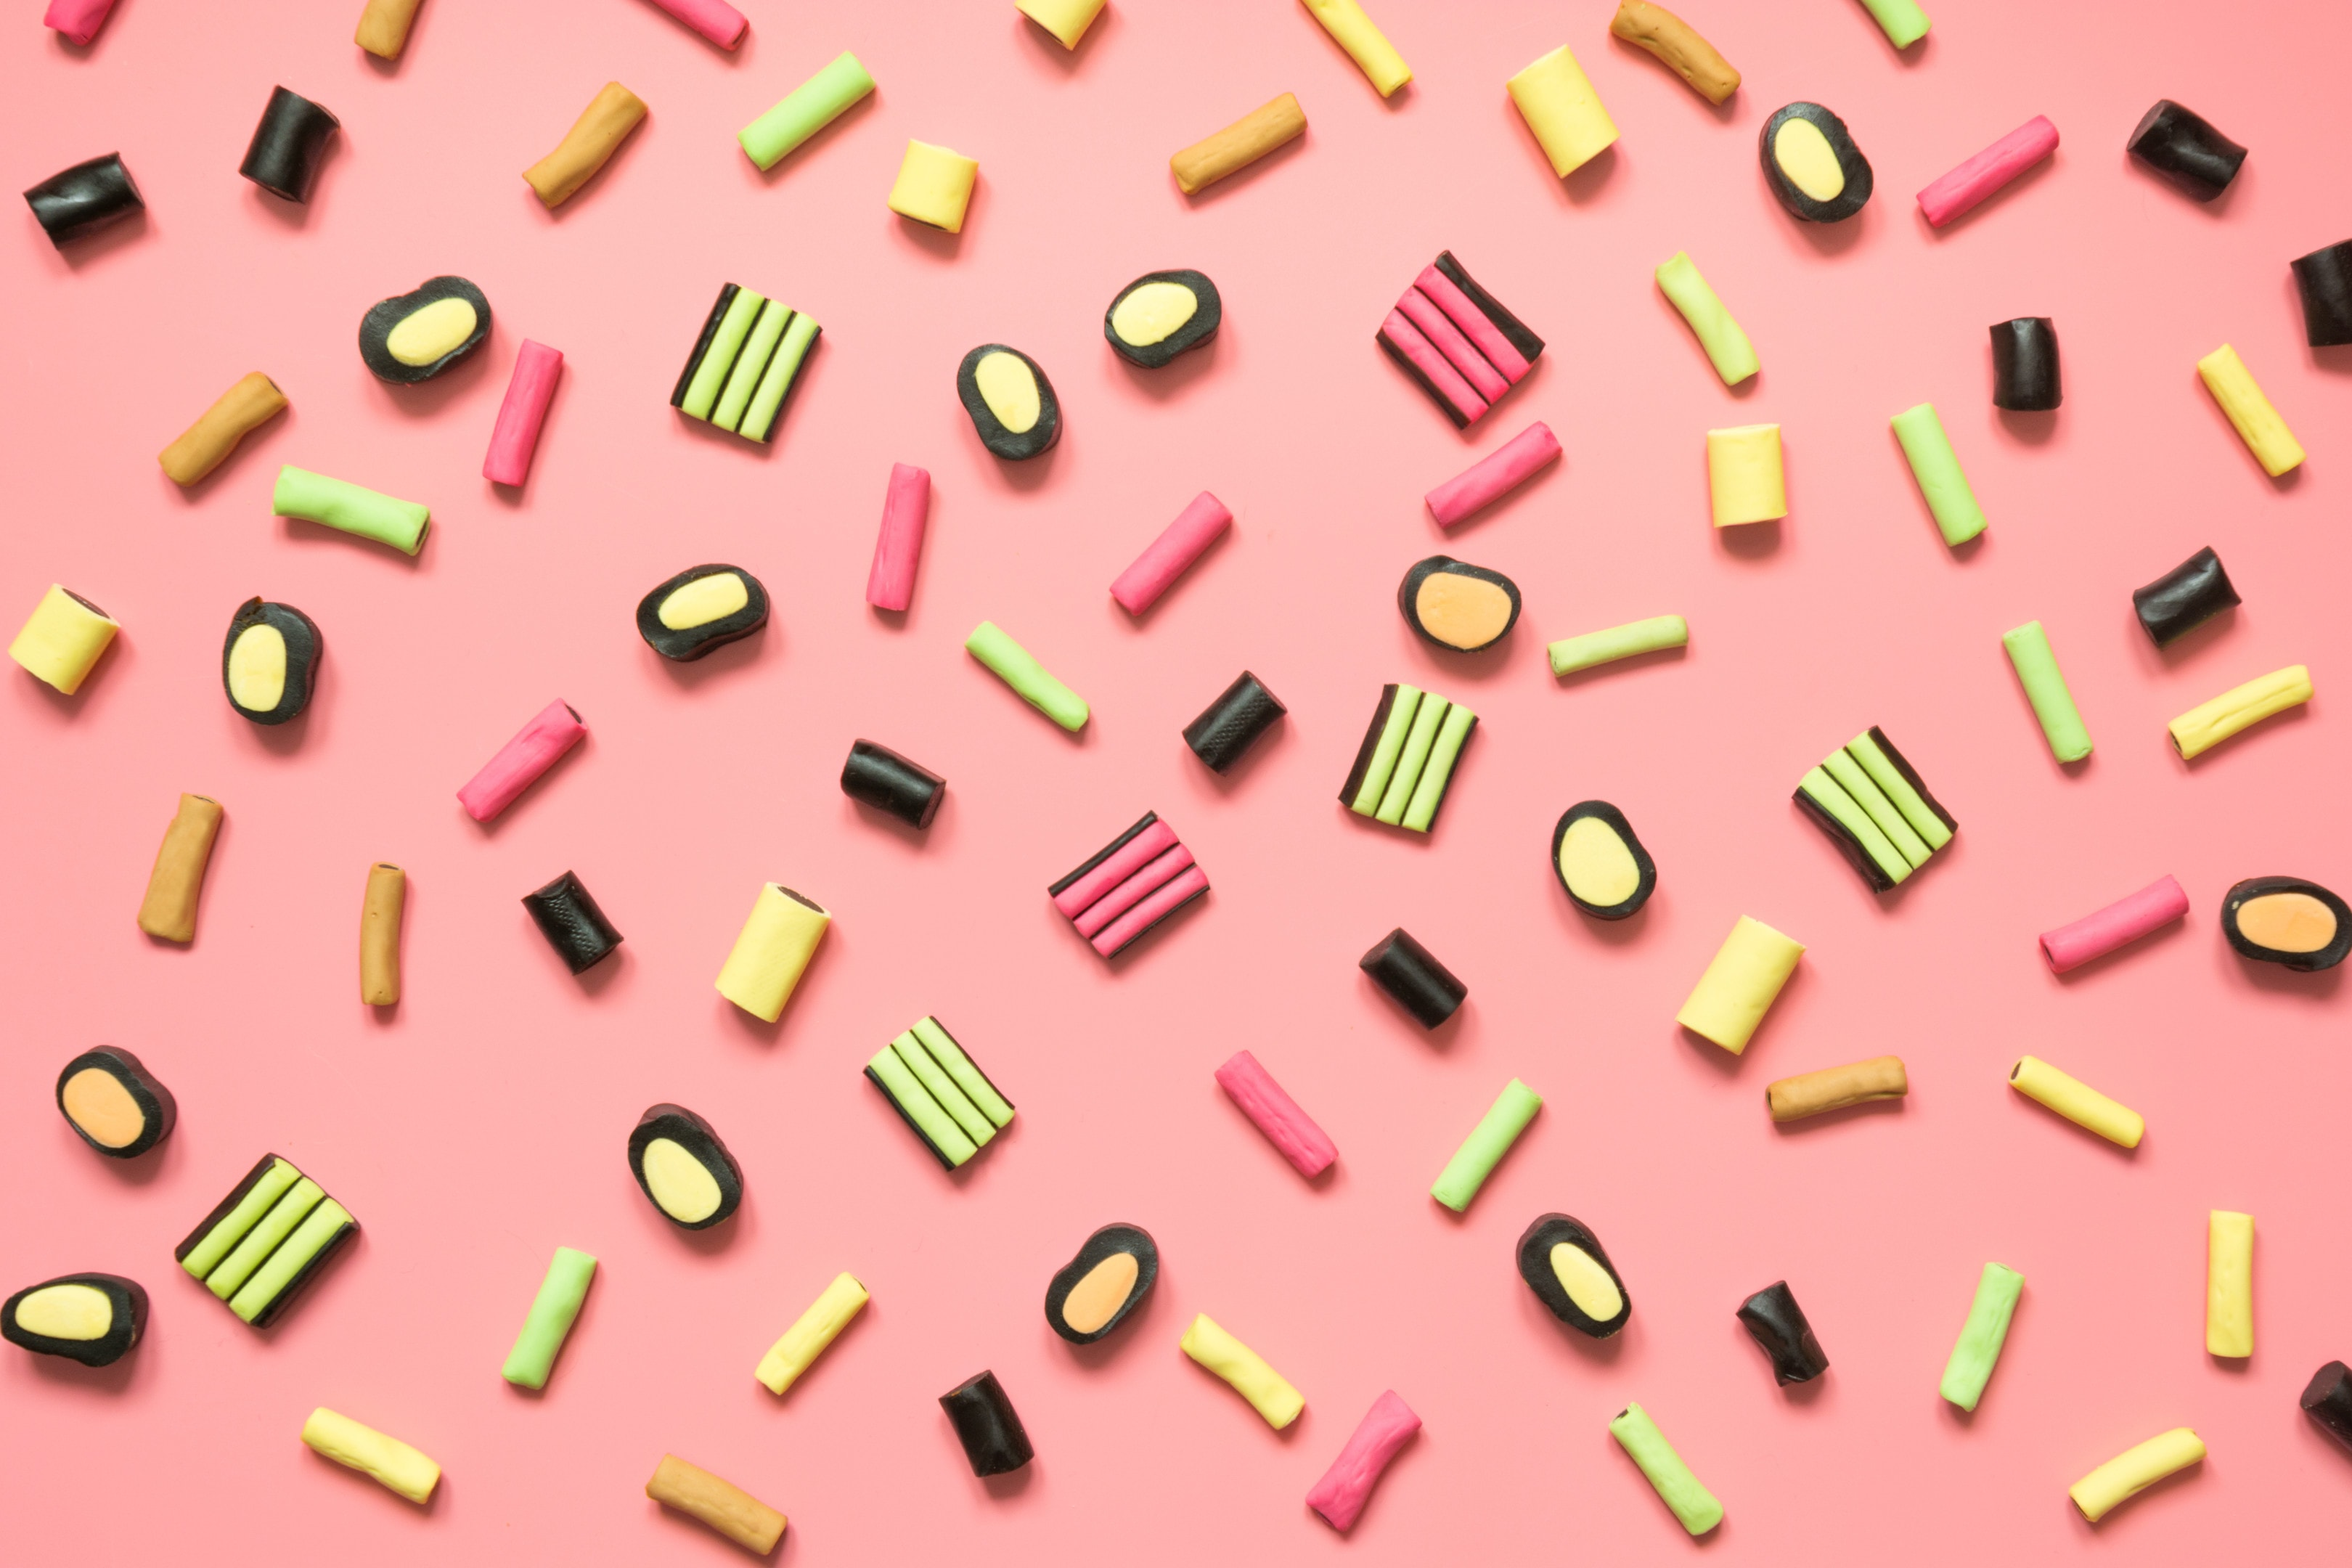 Colorful lollipop and licorice candy assortment on pink background